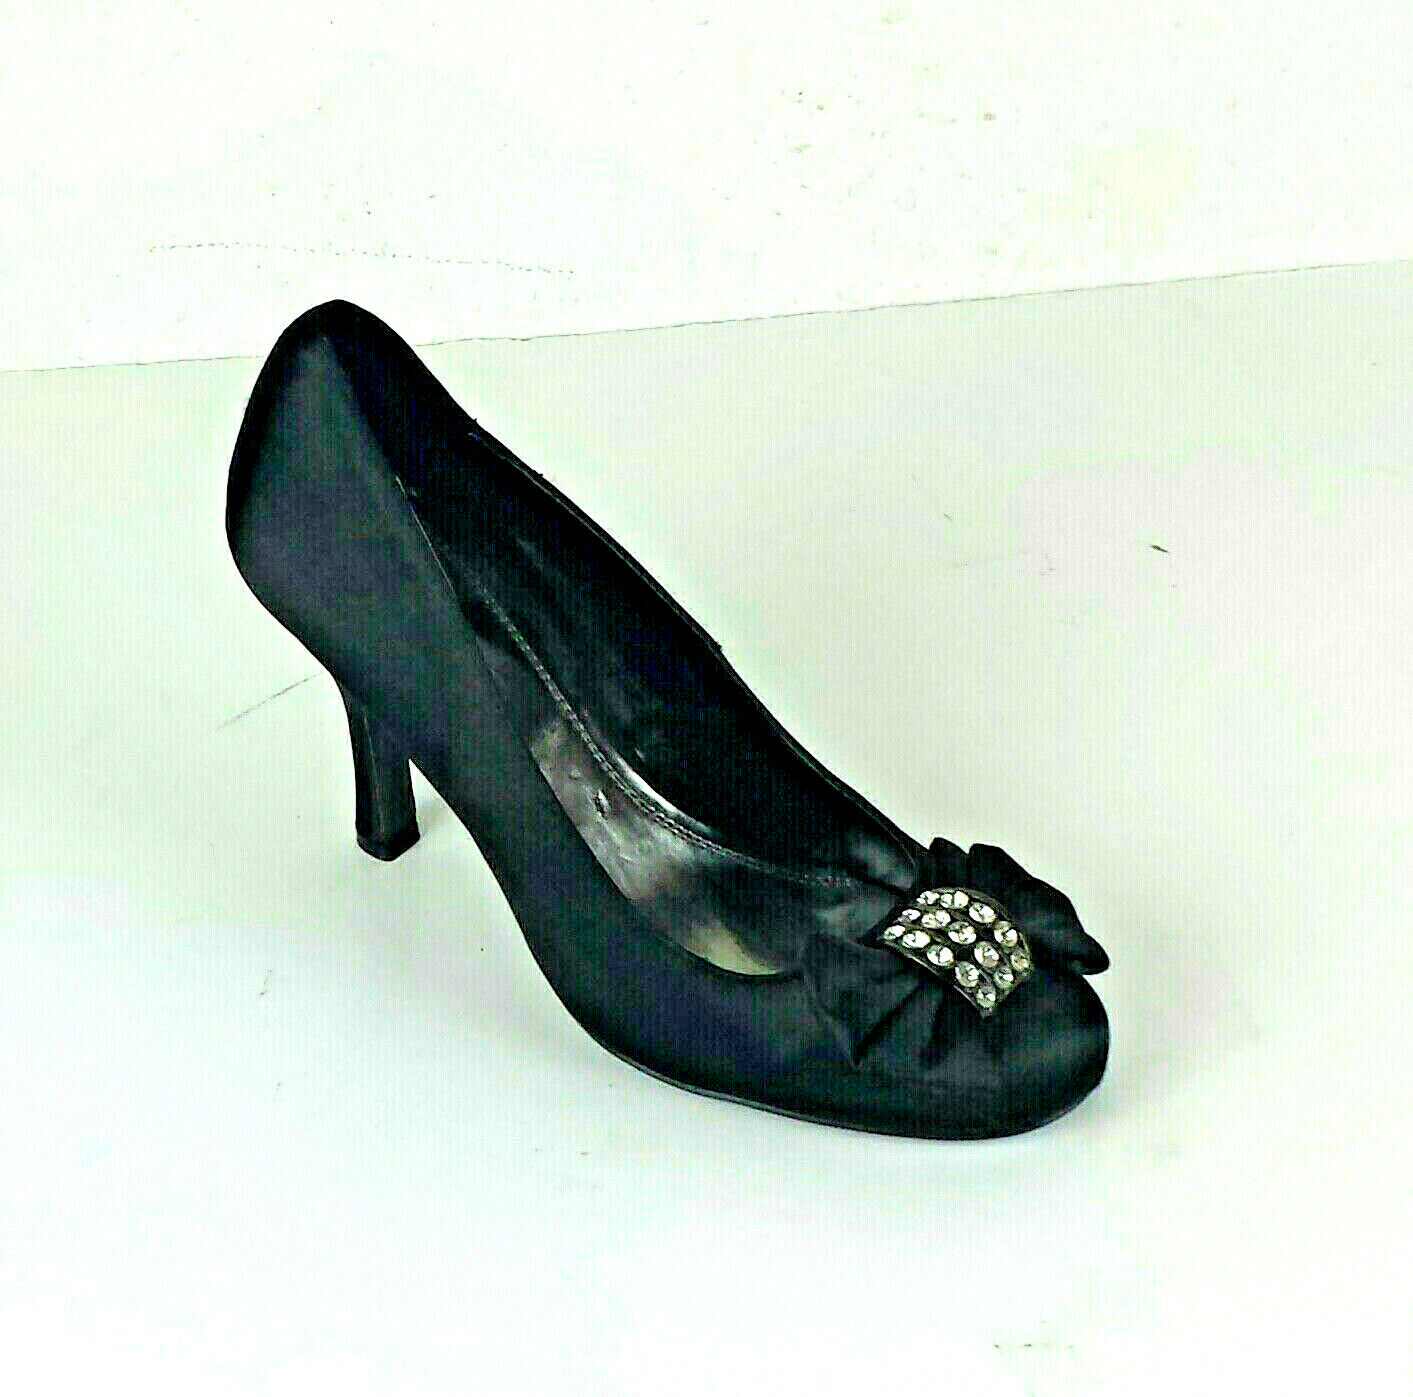 Pulse Womens shoes Sz 9 9 9 Fits Up to 9.5 Black Satin Jeweled Bow Round 3.75in Heel e258fd